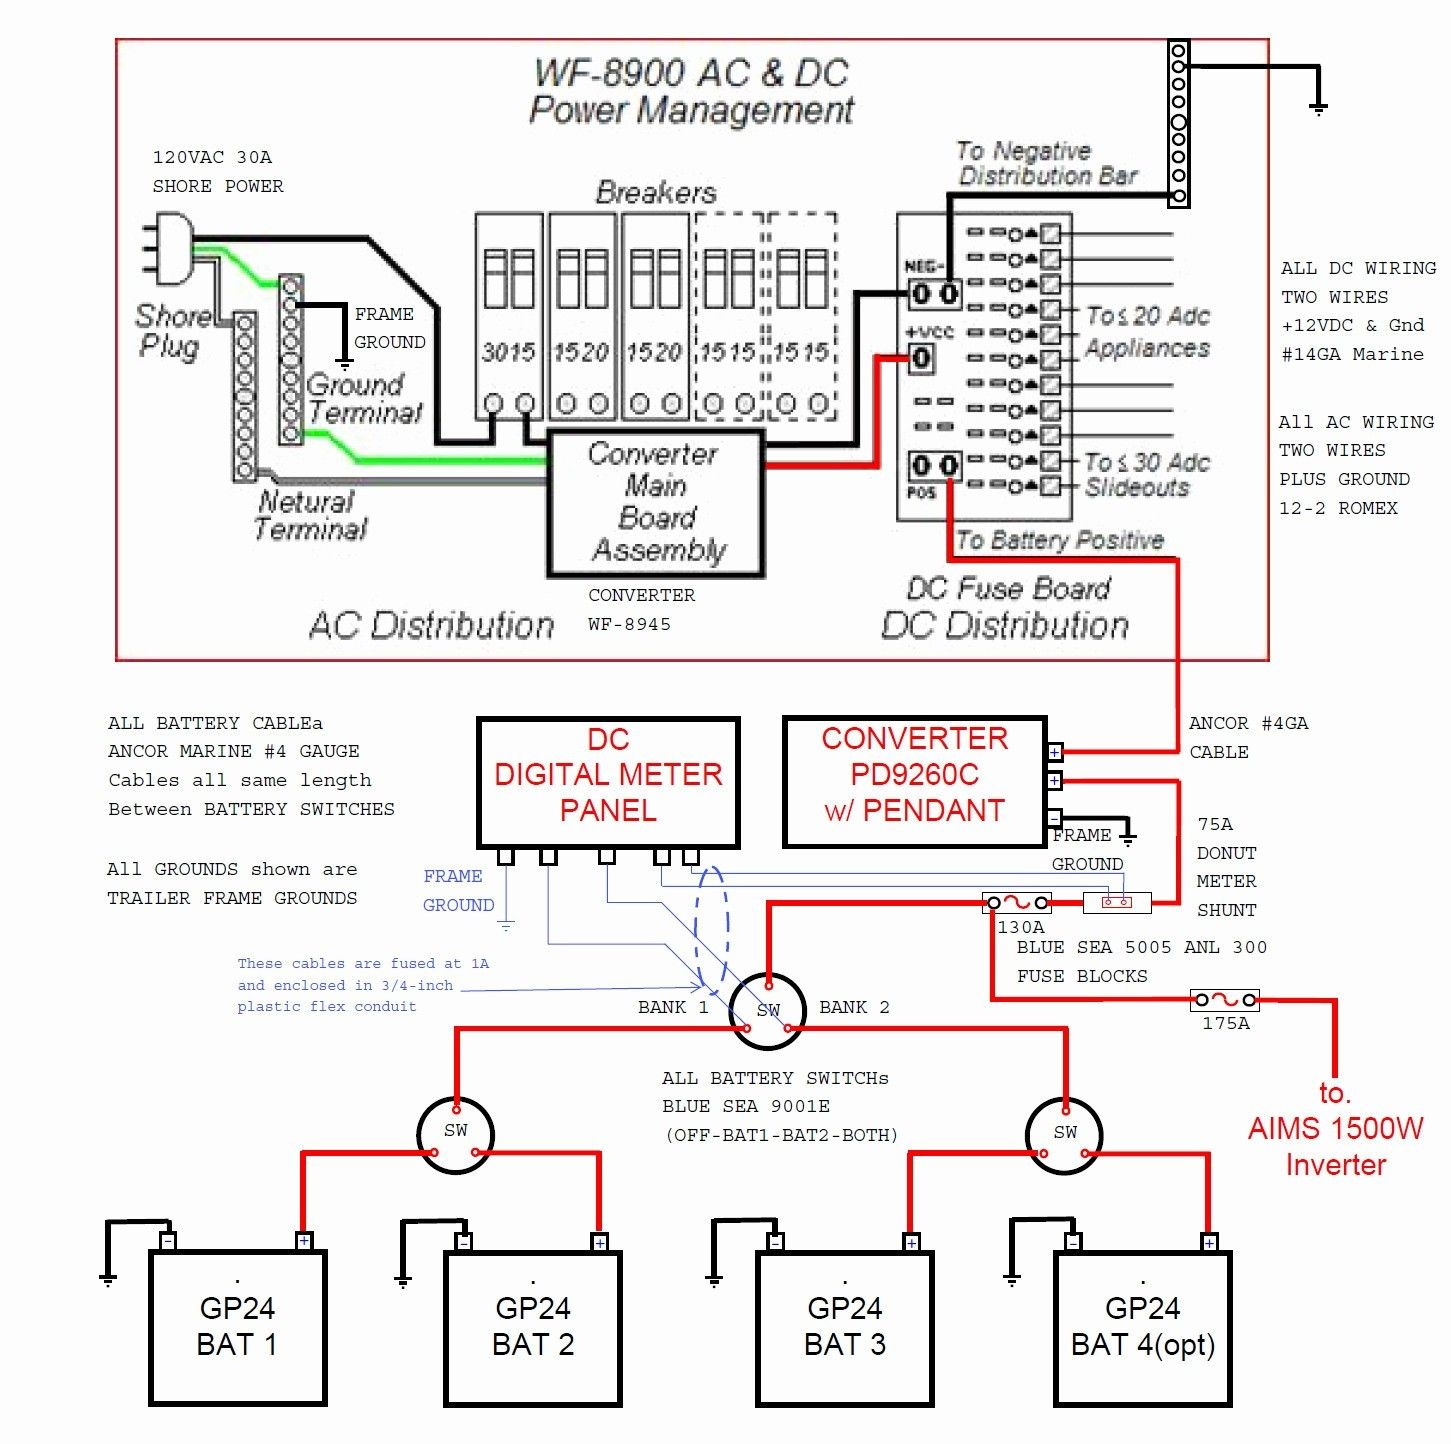 wiring diagram also 30 generator power cord inlet box likewise power30 amp generator plug diagram wiring [ 1451 x 1444 Pixel ]